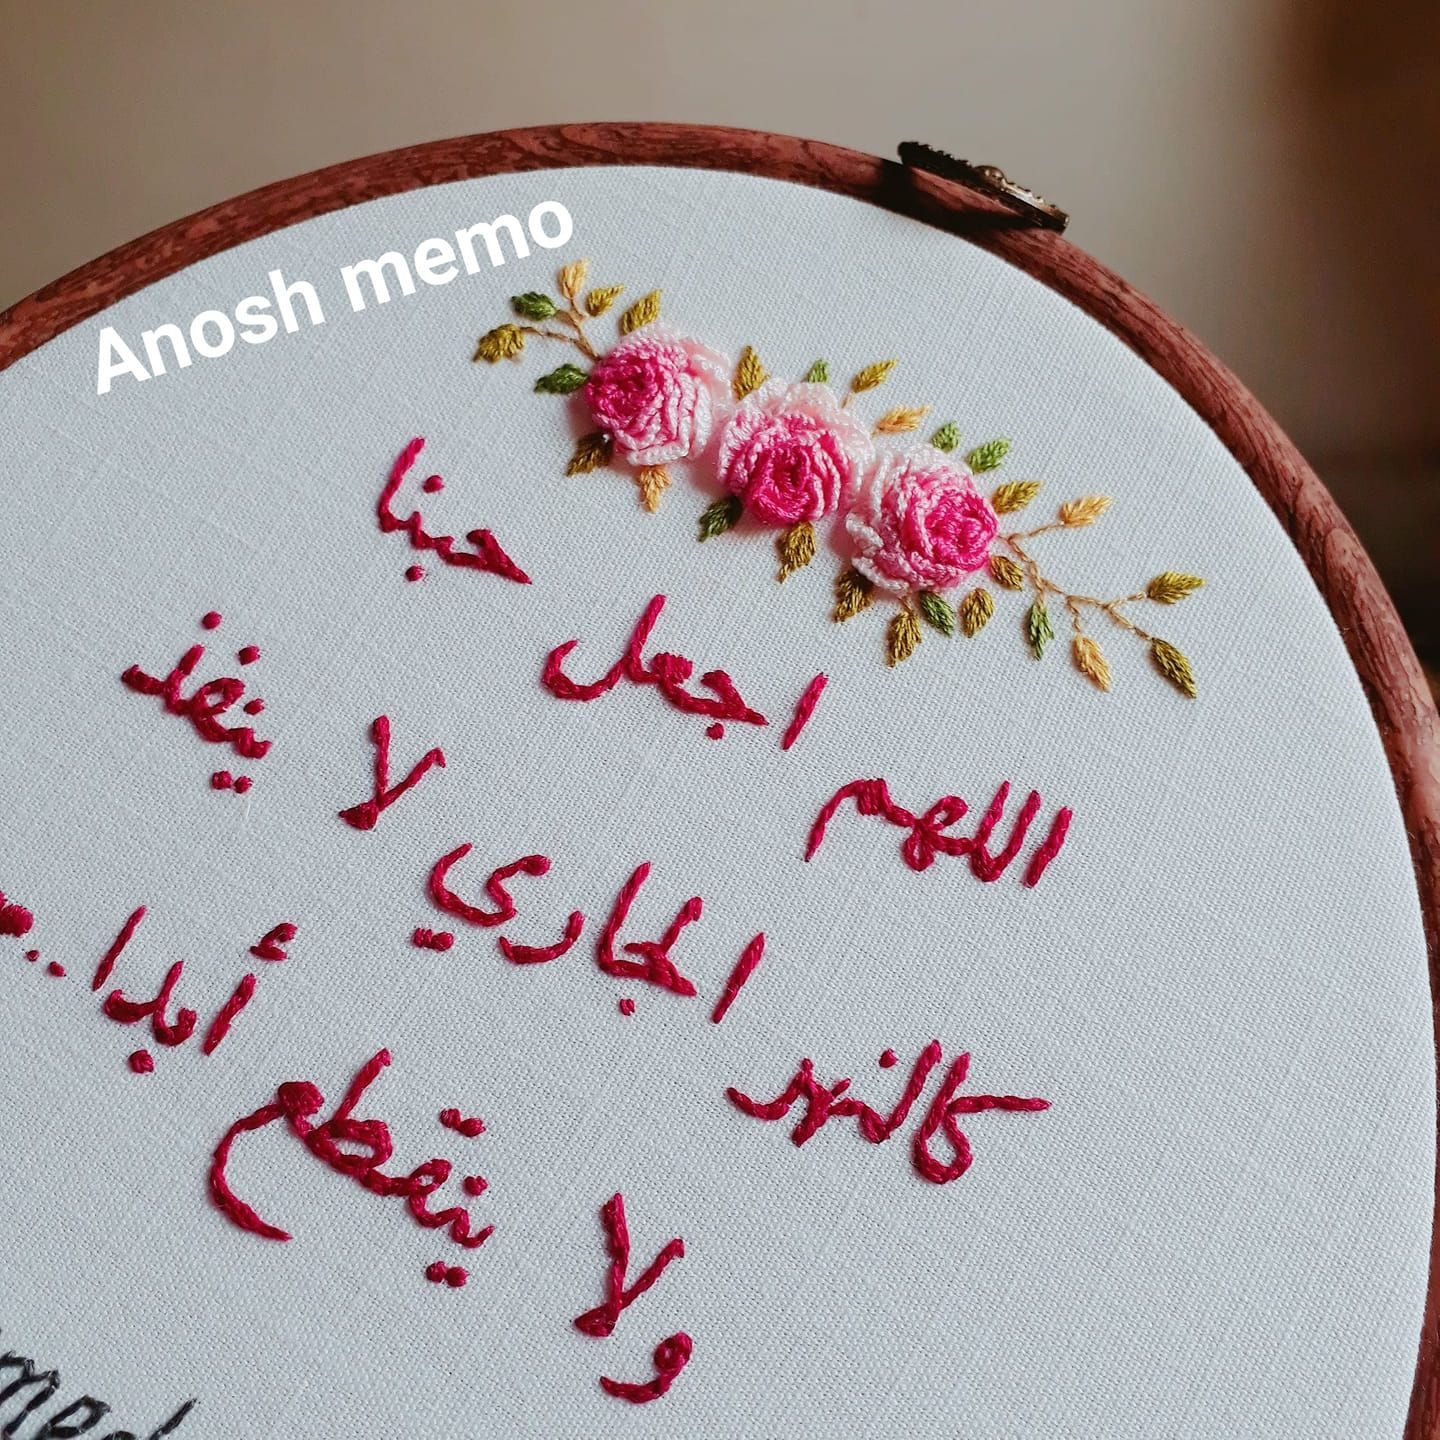 Pin By Hind Akr On بيتنا Hand Embroidery Art Sewing Embroidery Designs Hand Embroidery Videos